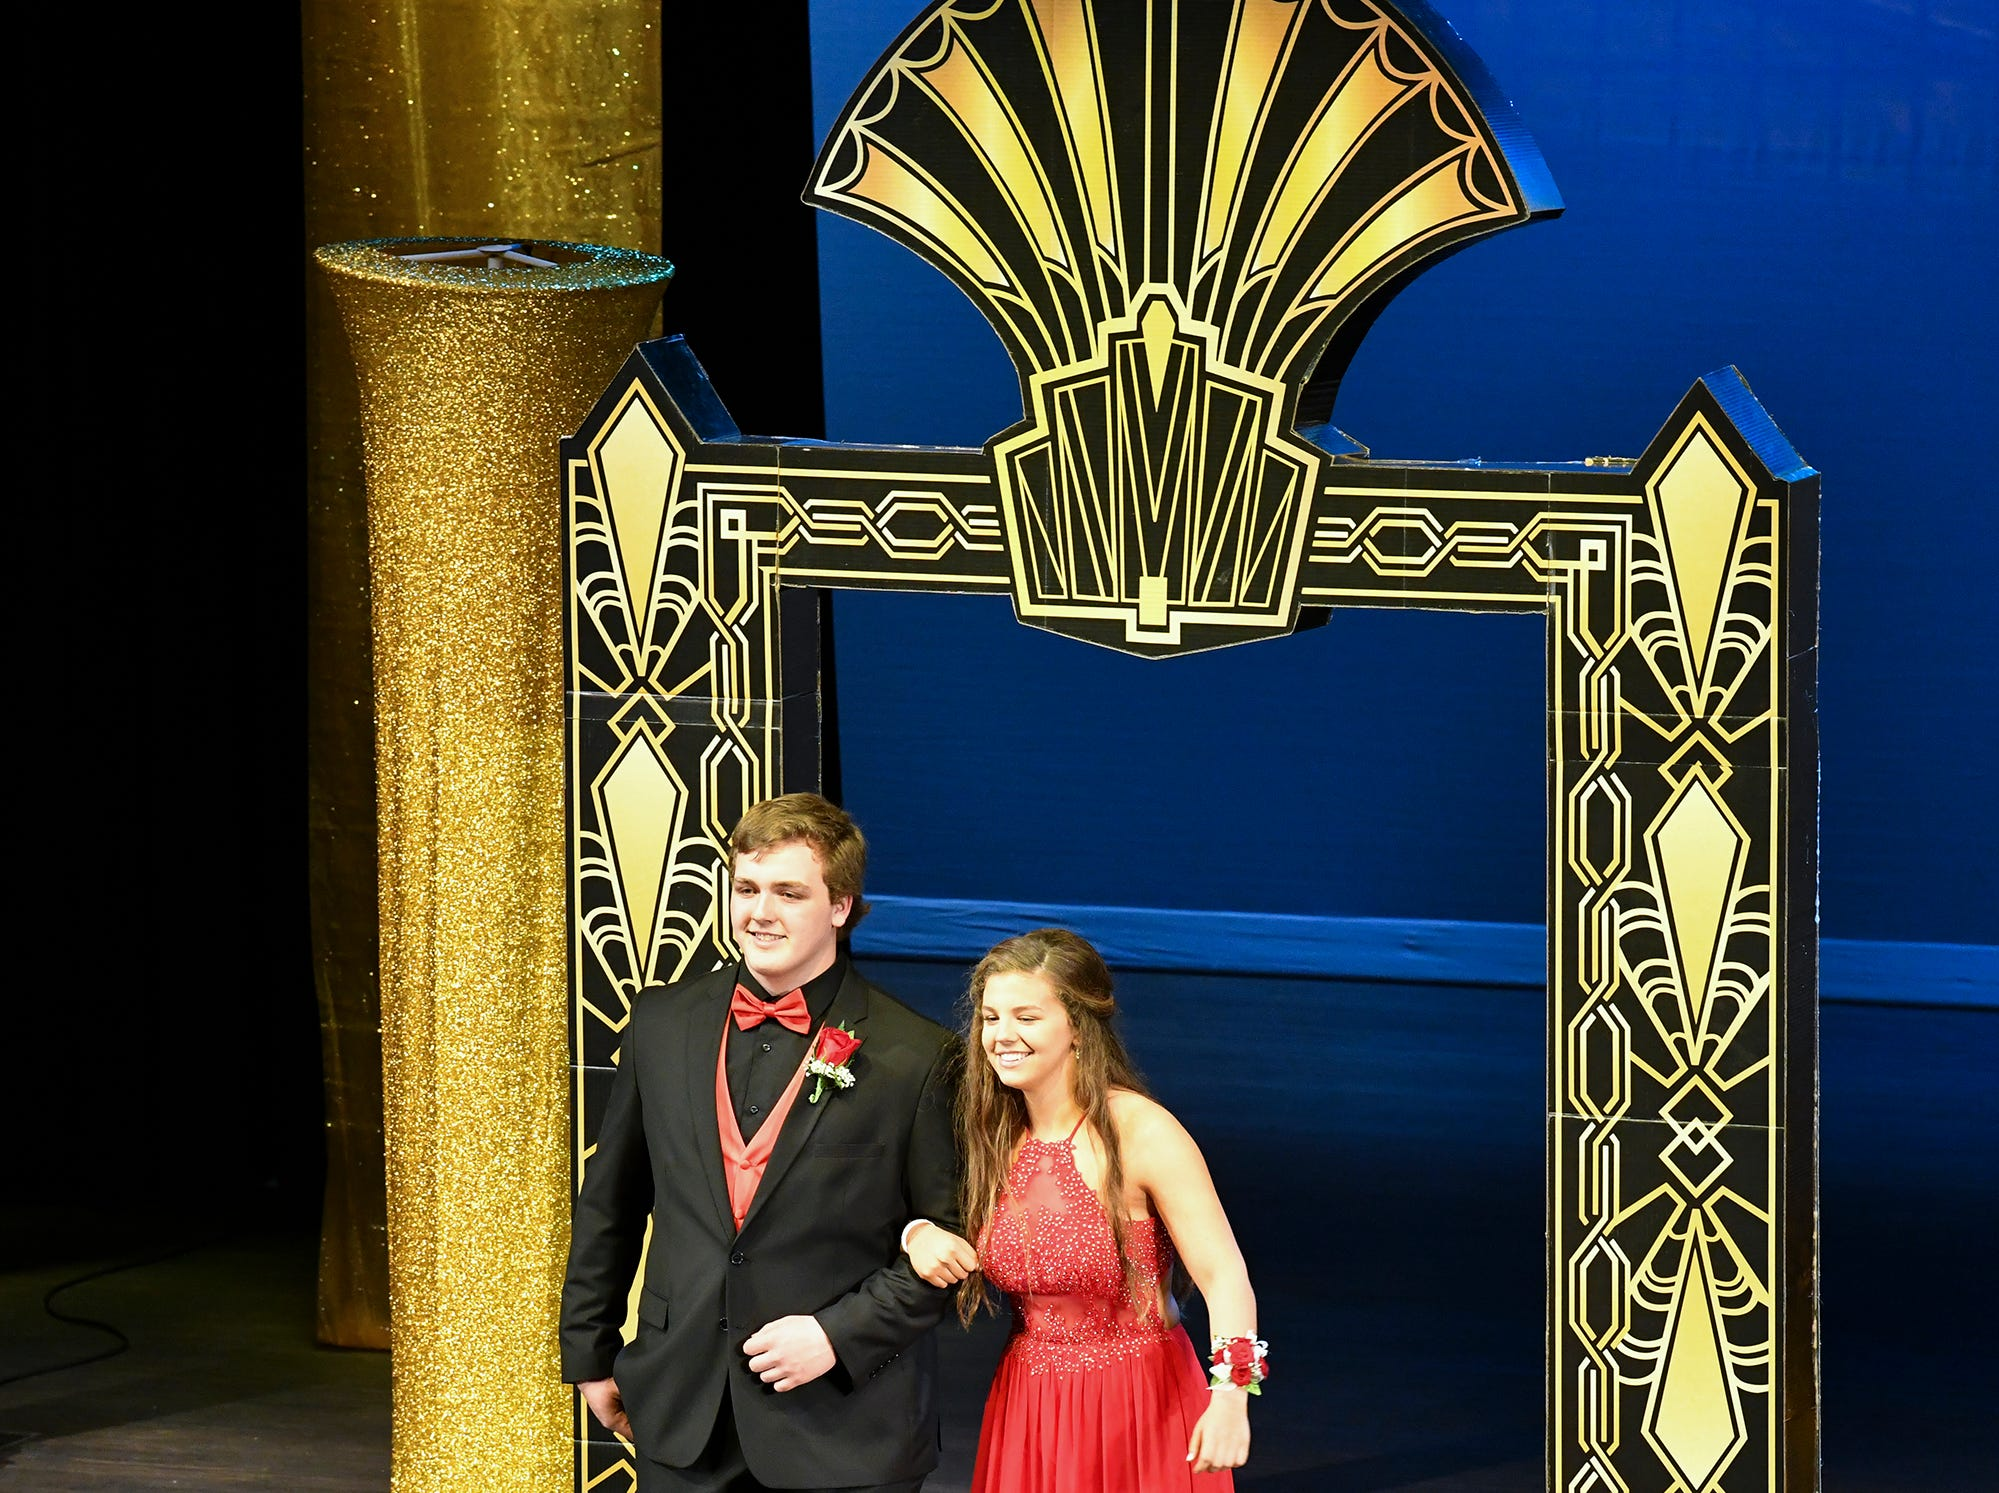 Olivia Haakonson and Devin Ritter take their turn on stage during prom grand march Saturday, April 6, at Albany High School.